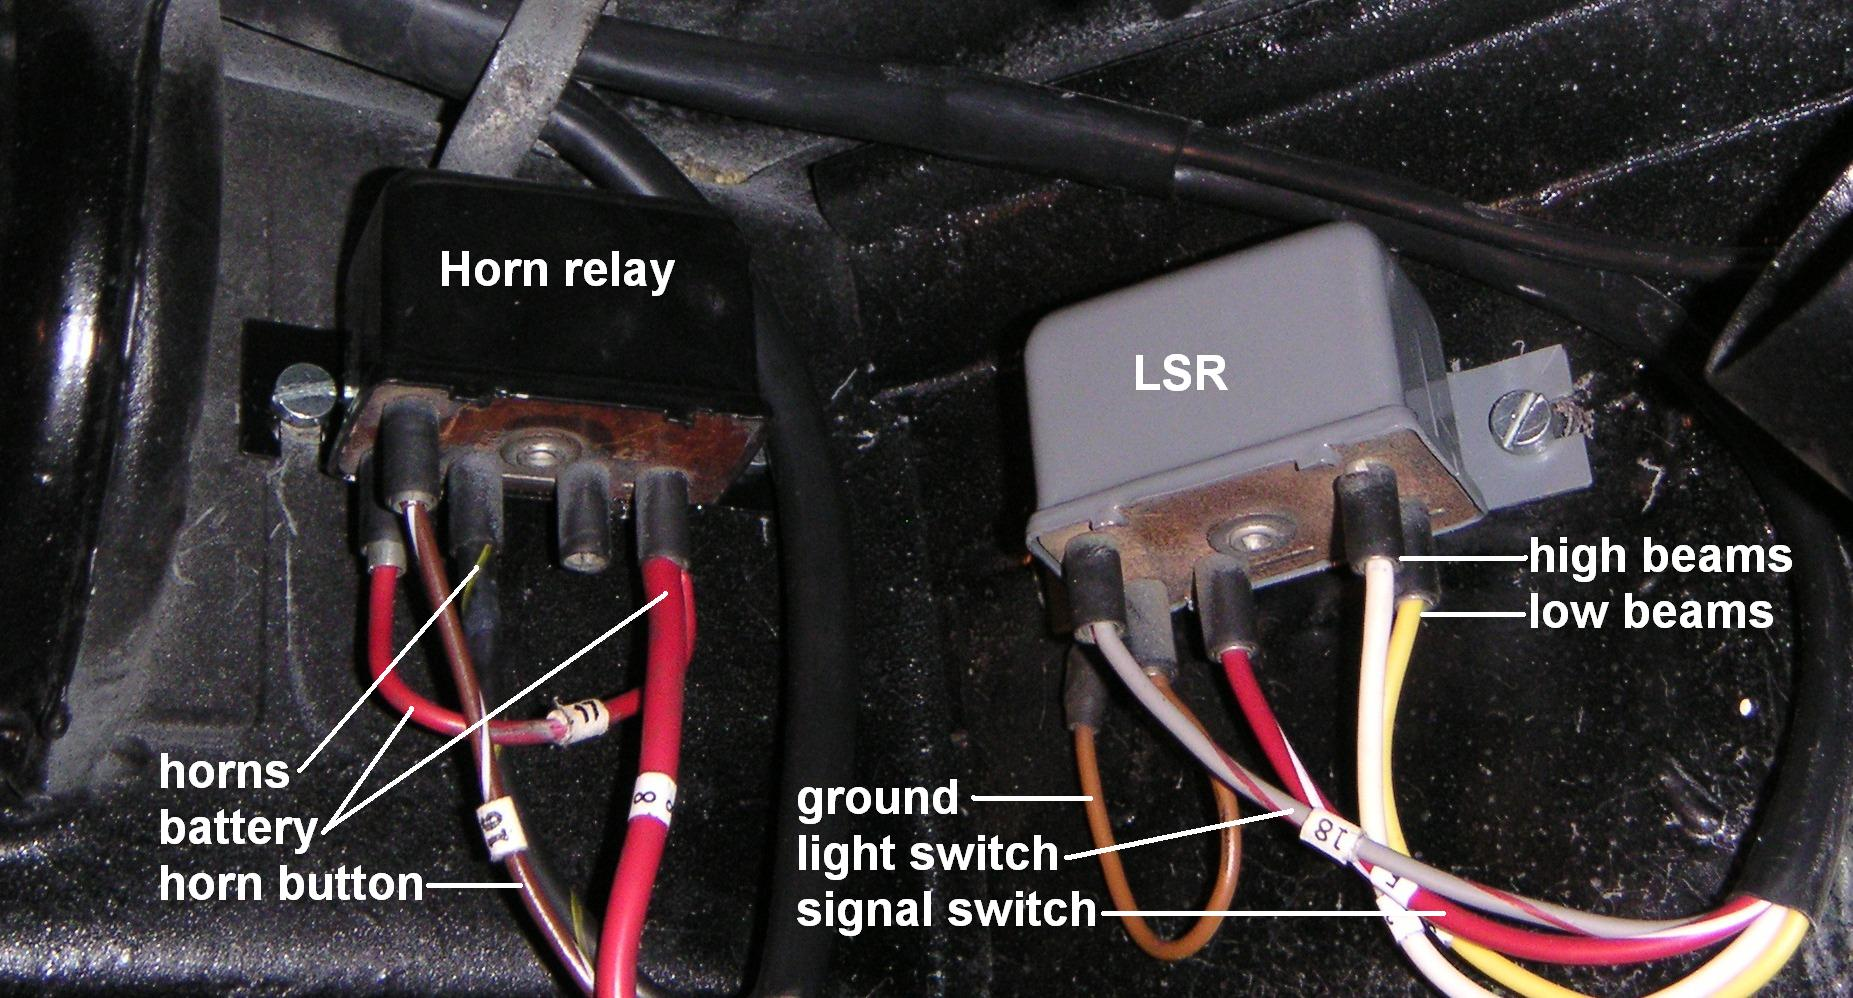 Technical midwest 356 club why do present day 356 owners install additional relays in their cars because the control switches on the 356 are expensive to replace because their ccuart Gallery